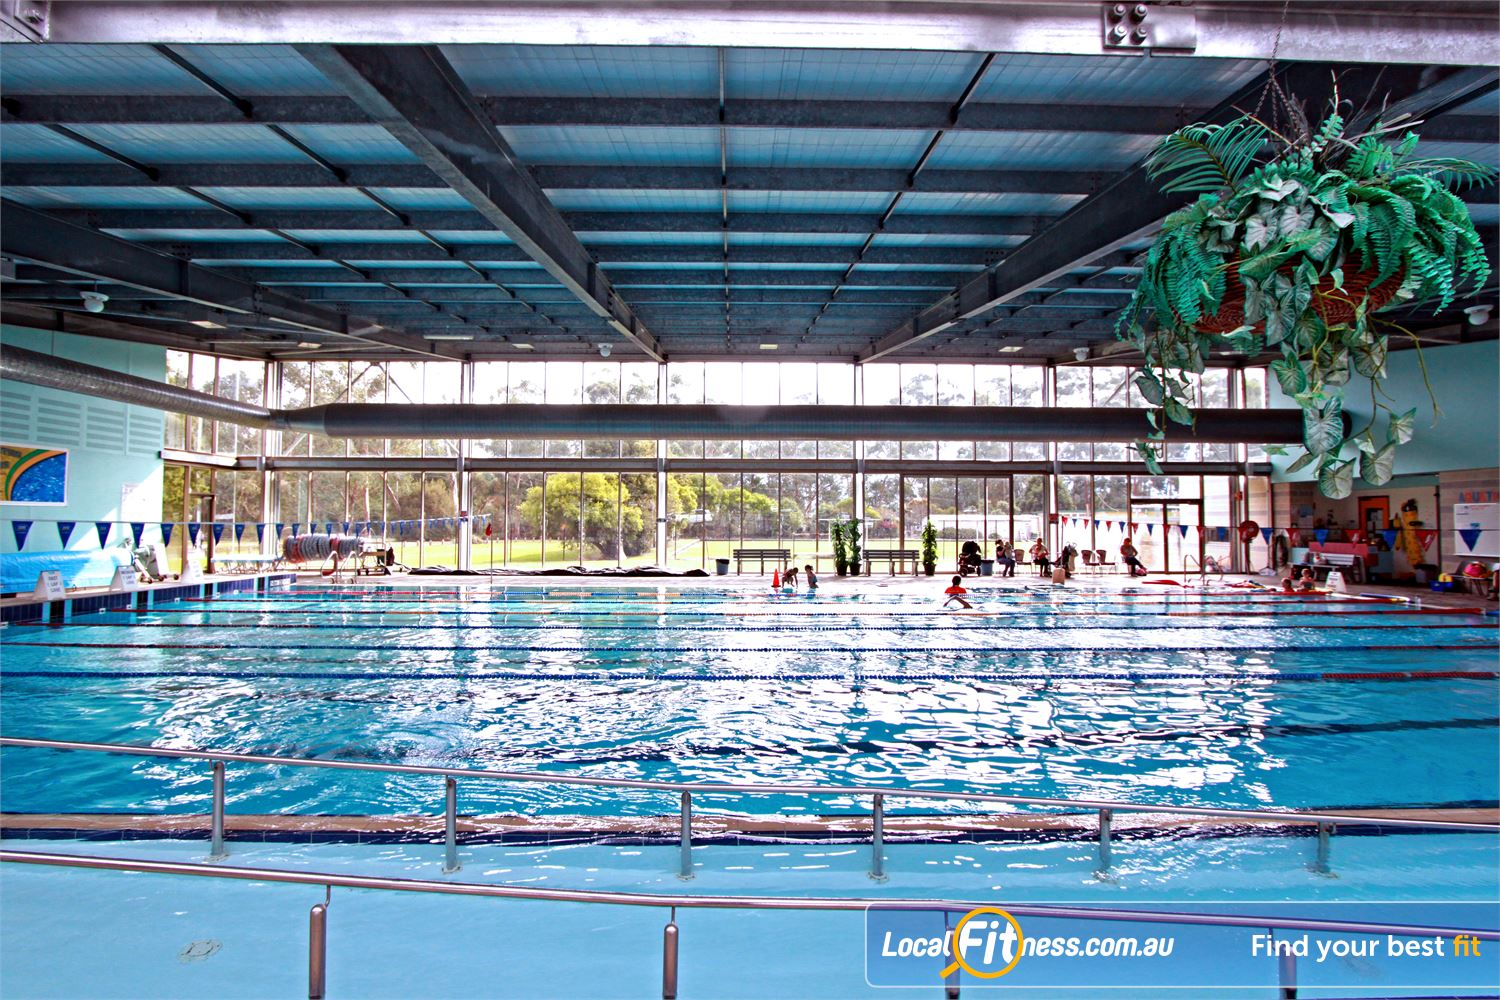 Yarra Recreation Centre Near Wesburn Our indoor swimming pool is heated all year round.